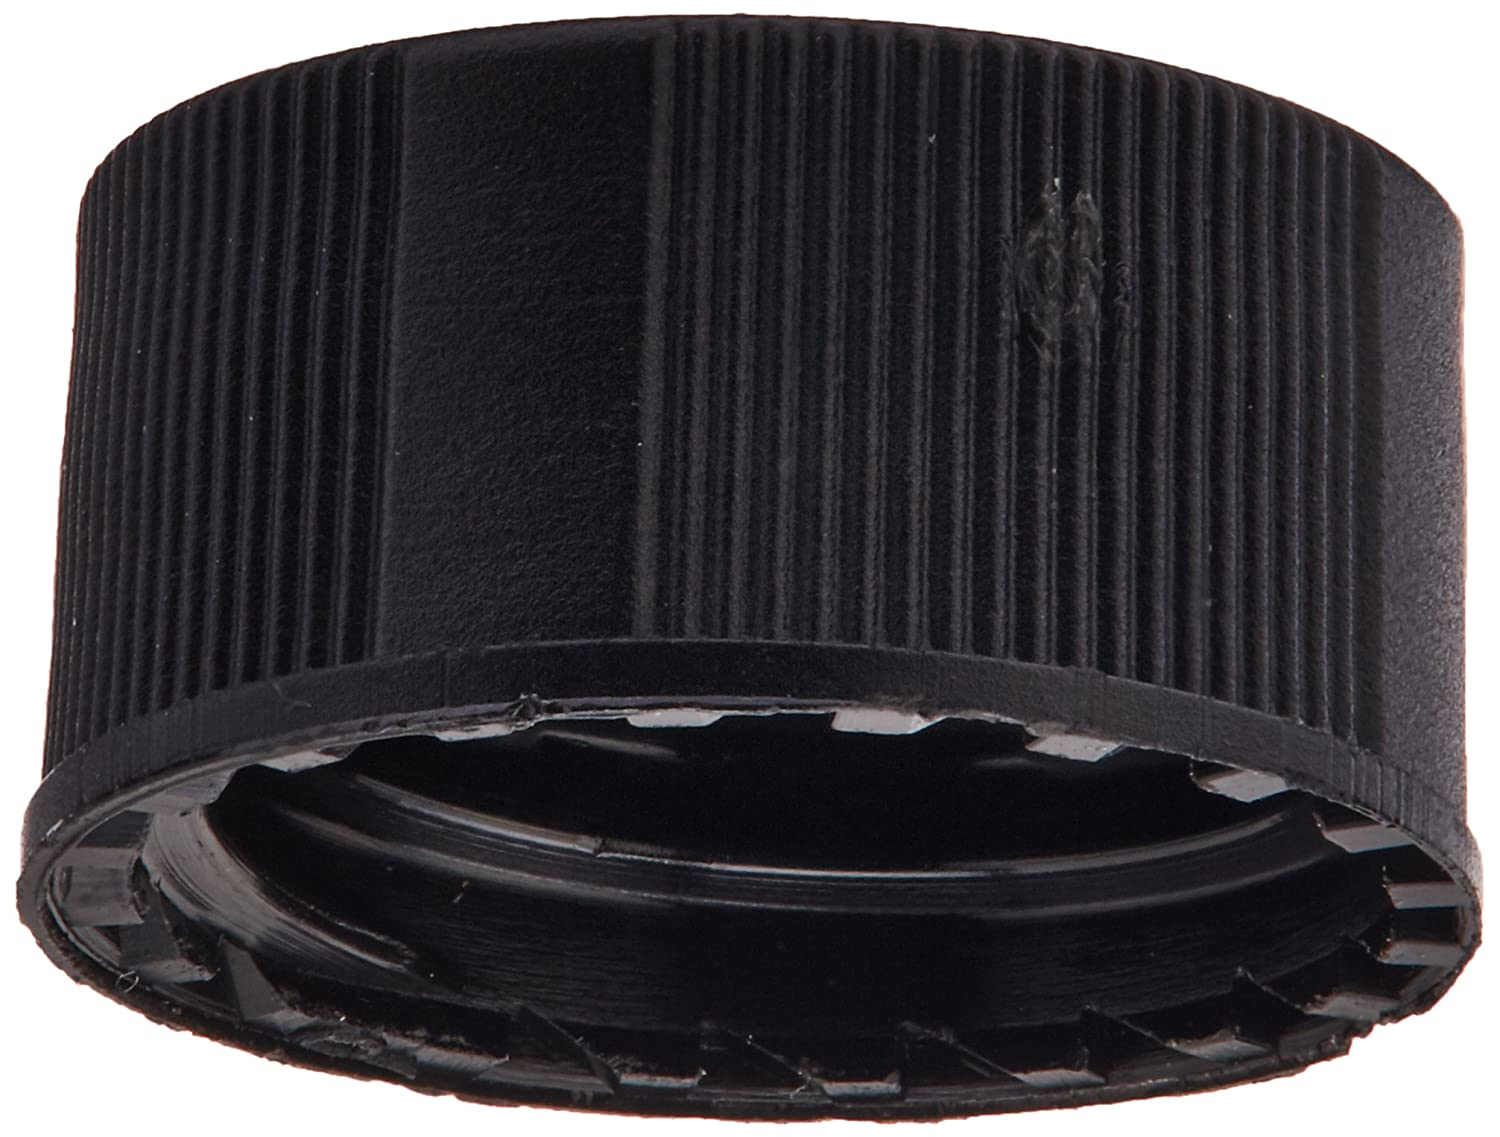 JG Finneran R.A.M. 5320-09 Black Polypropylene Screw Threaded Solid Top Cap for Large Opening Vials, Unlined, 9mm Cap Size (Case of 1000)